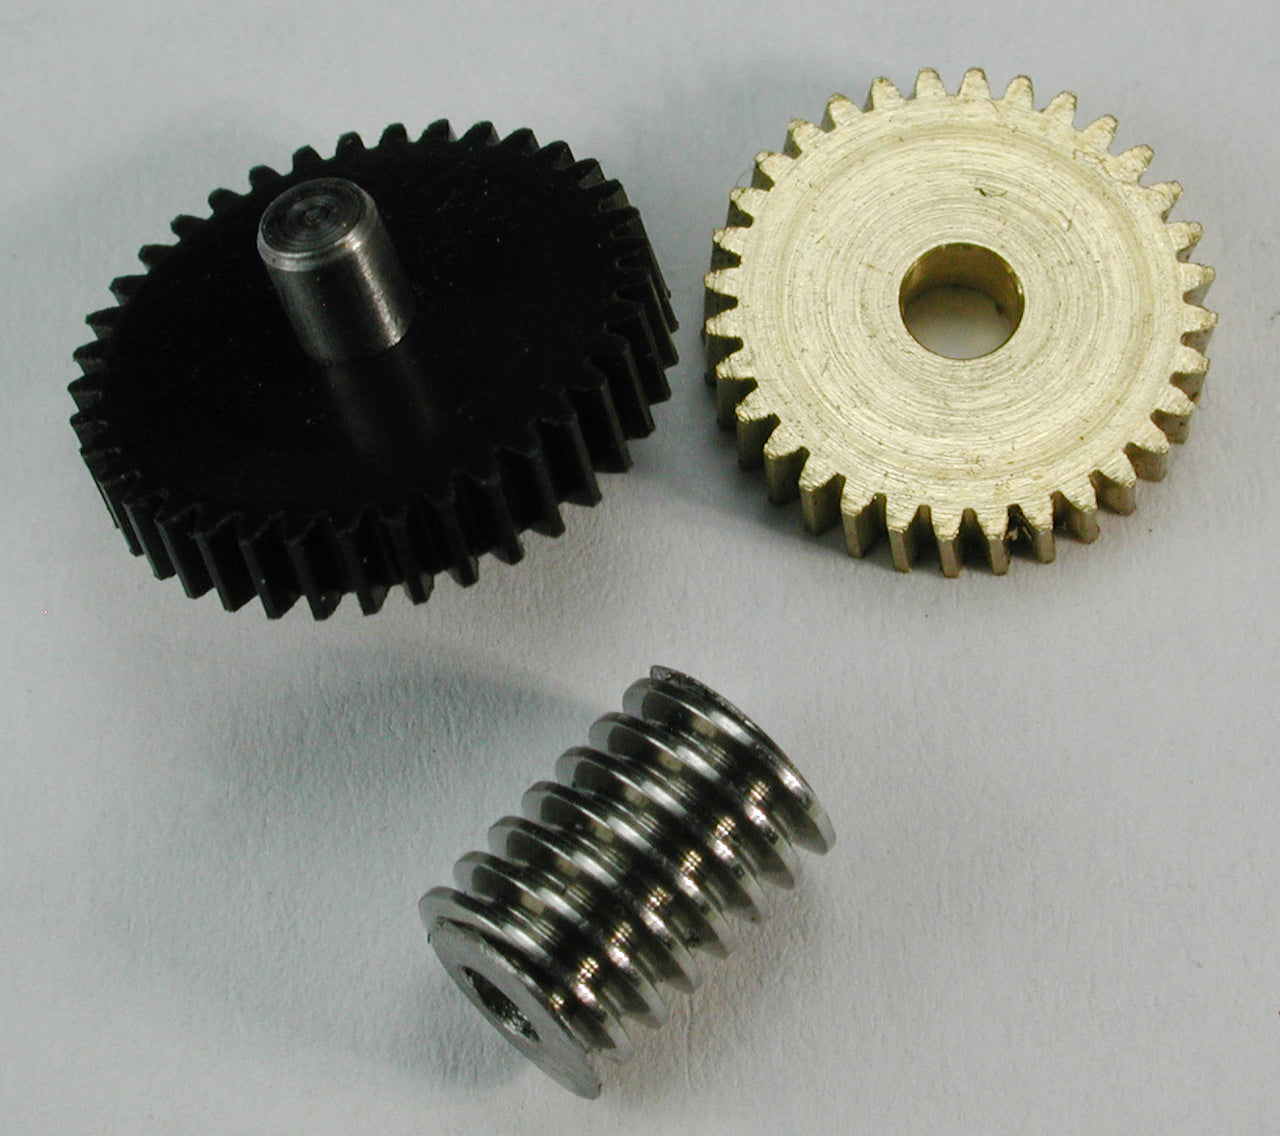 Regear Set 1.5mm Shaft motor MDC Gear KIT